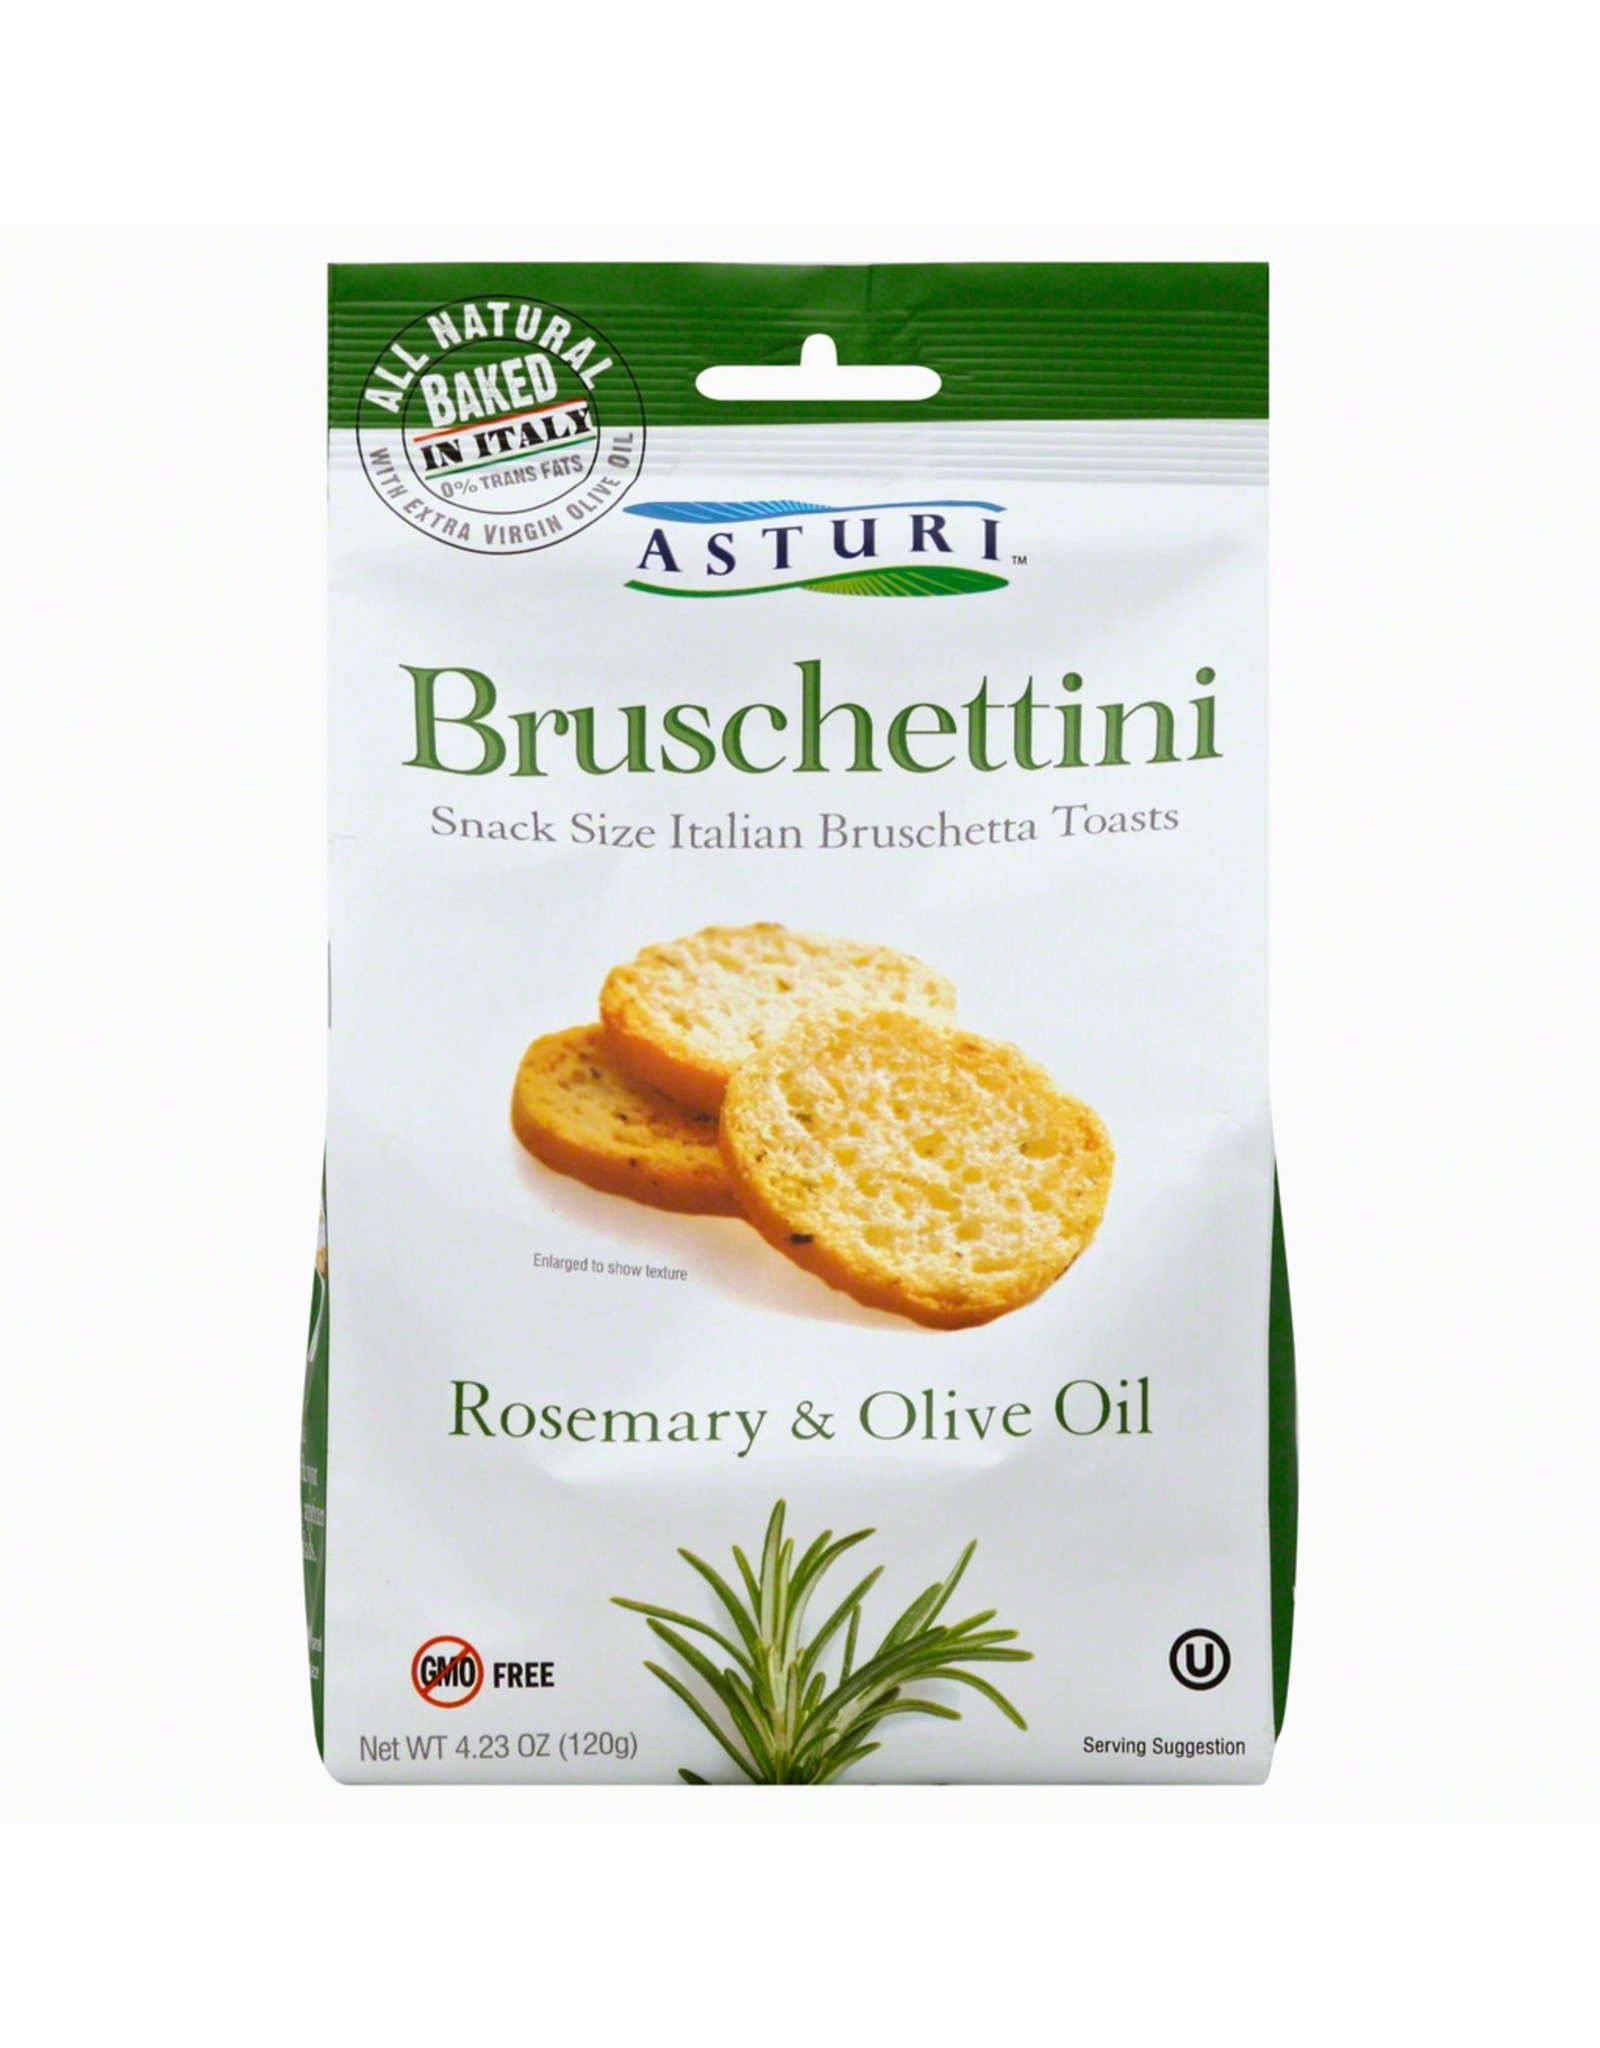 Specialty Foods Asturi, Bruschettini,Rosemary and Olive Oil, Italy, 4.23oz. 120g